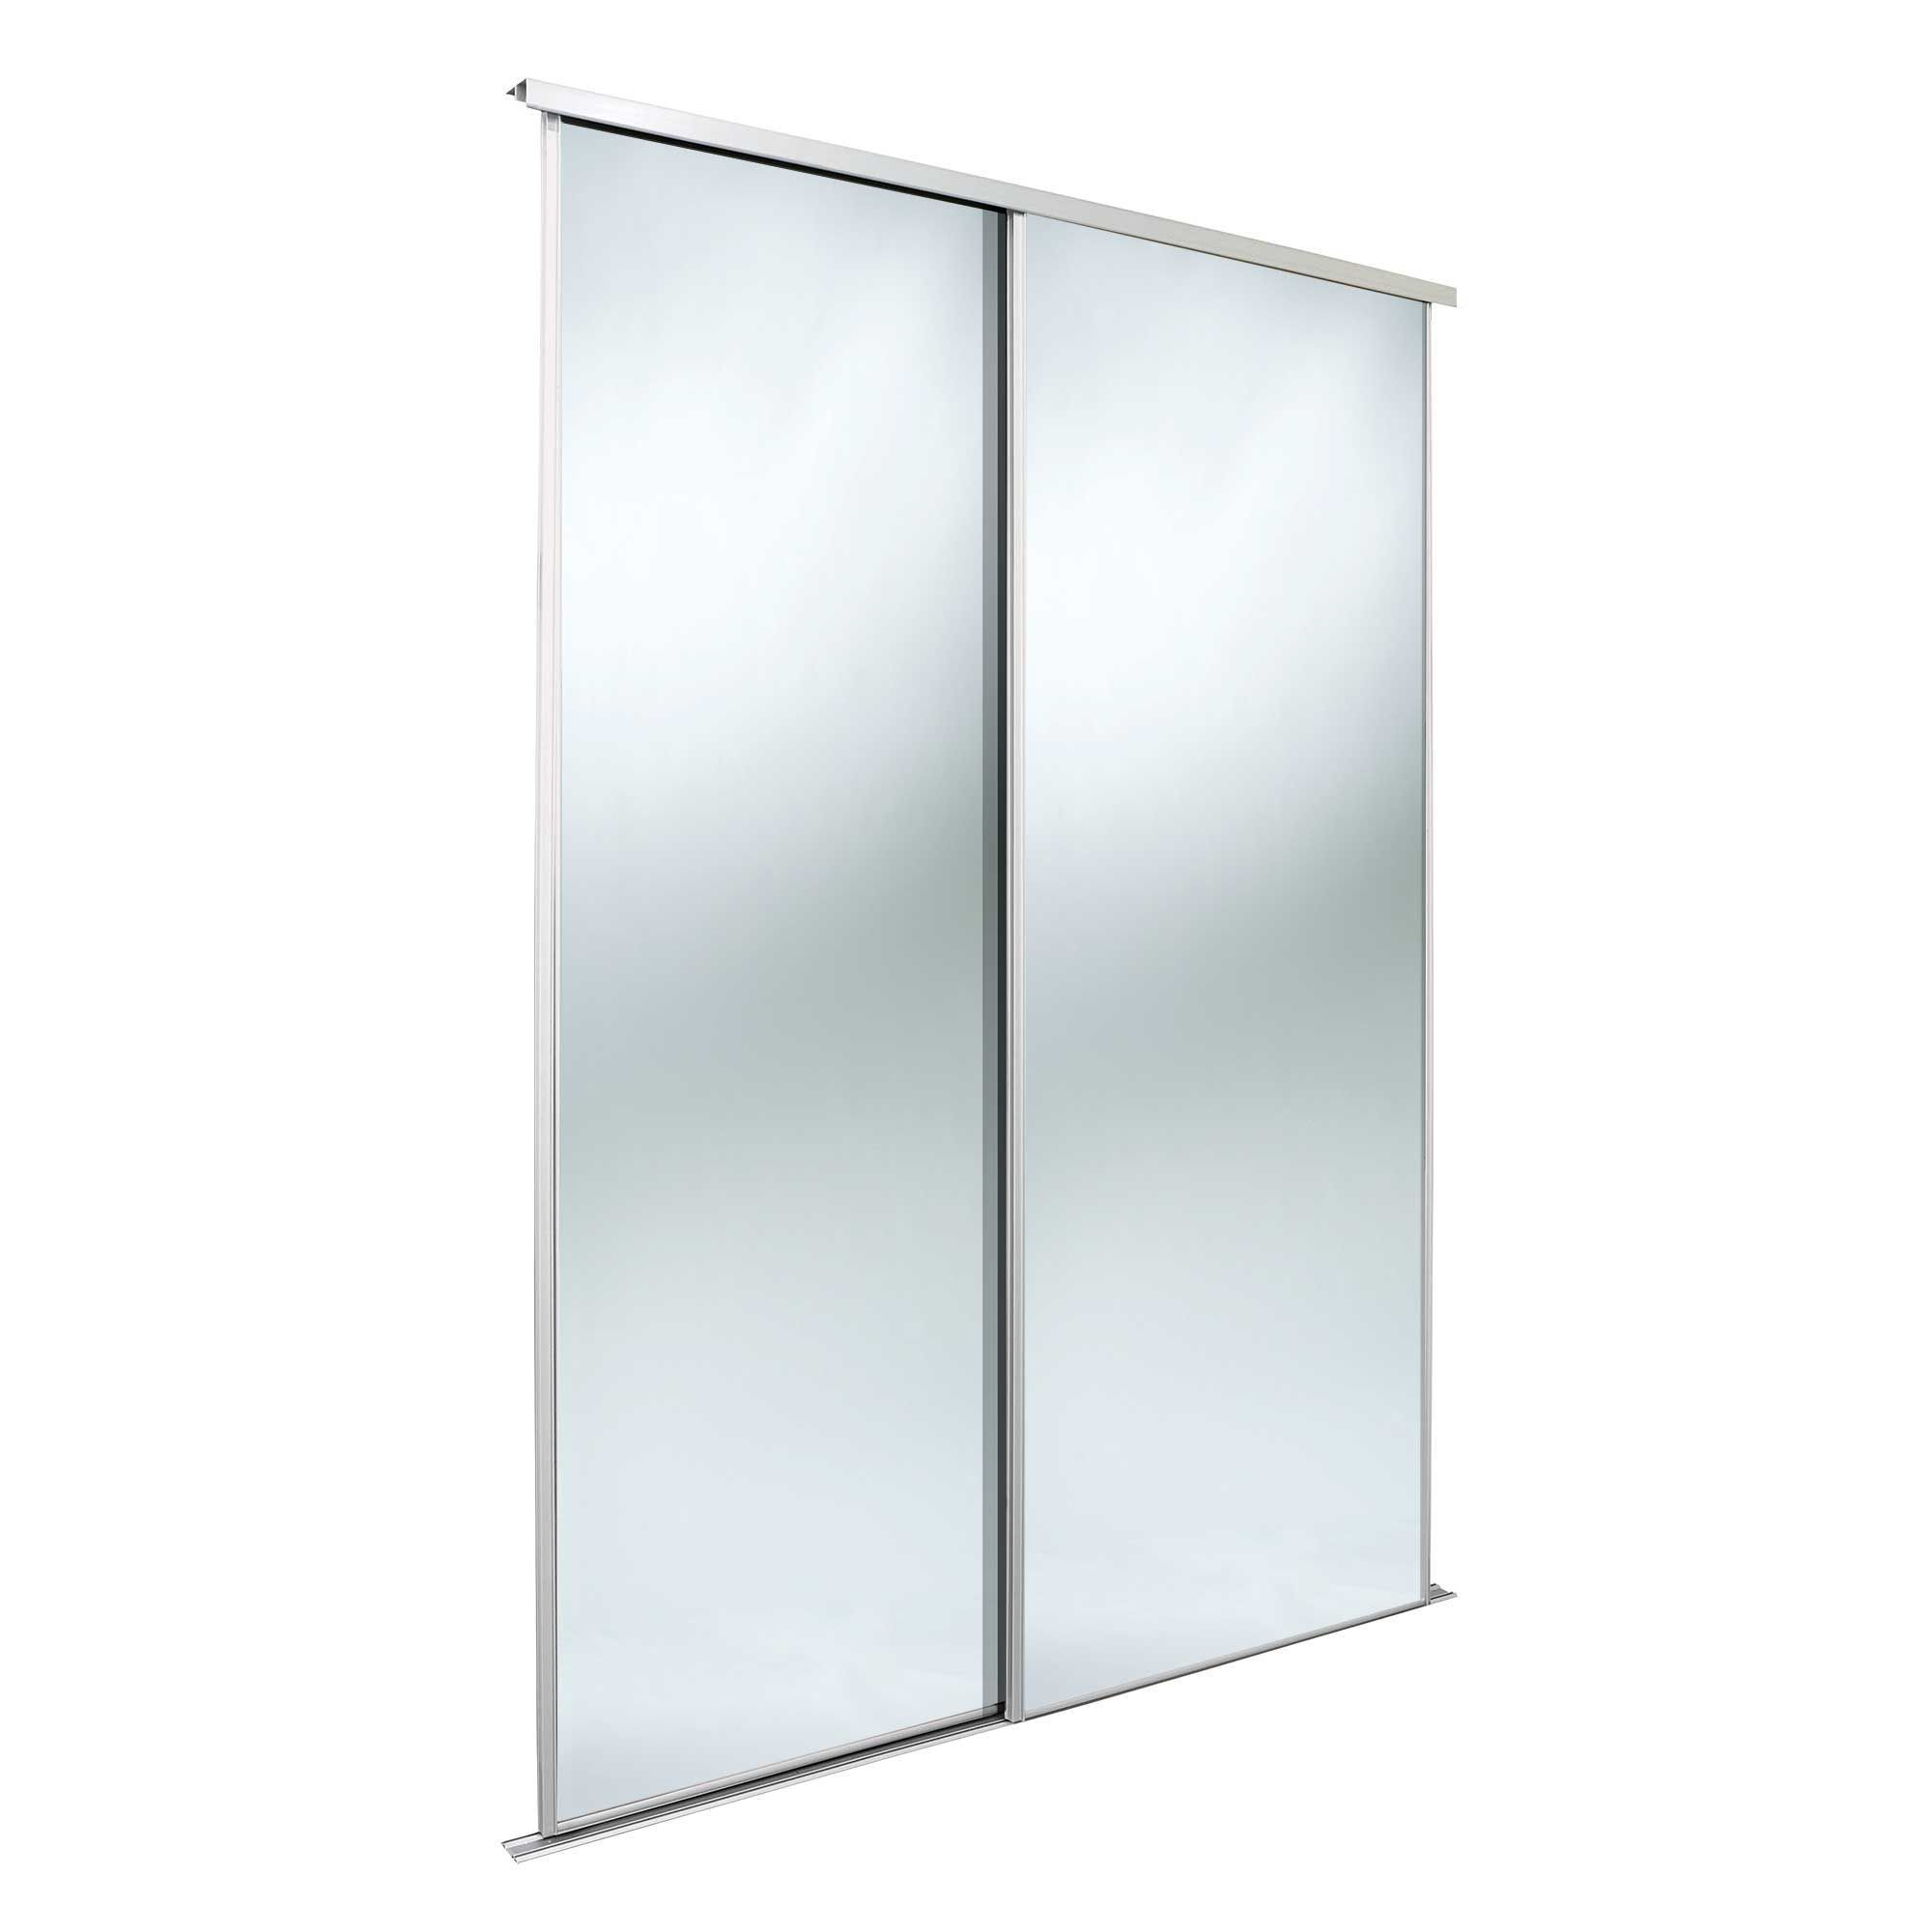 Classic Mirrored White Mirror Effect Sliding Wardrobe Door Kit (H)2220 mm  (W)762mm, Pack of 2 | Departments | DIY at B&Q